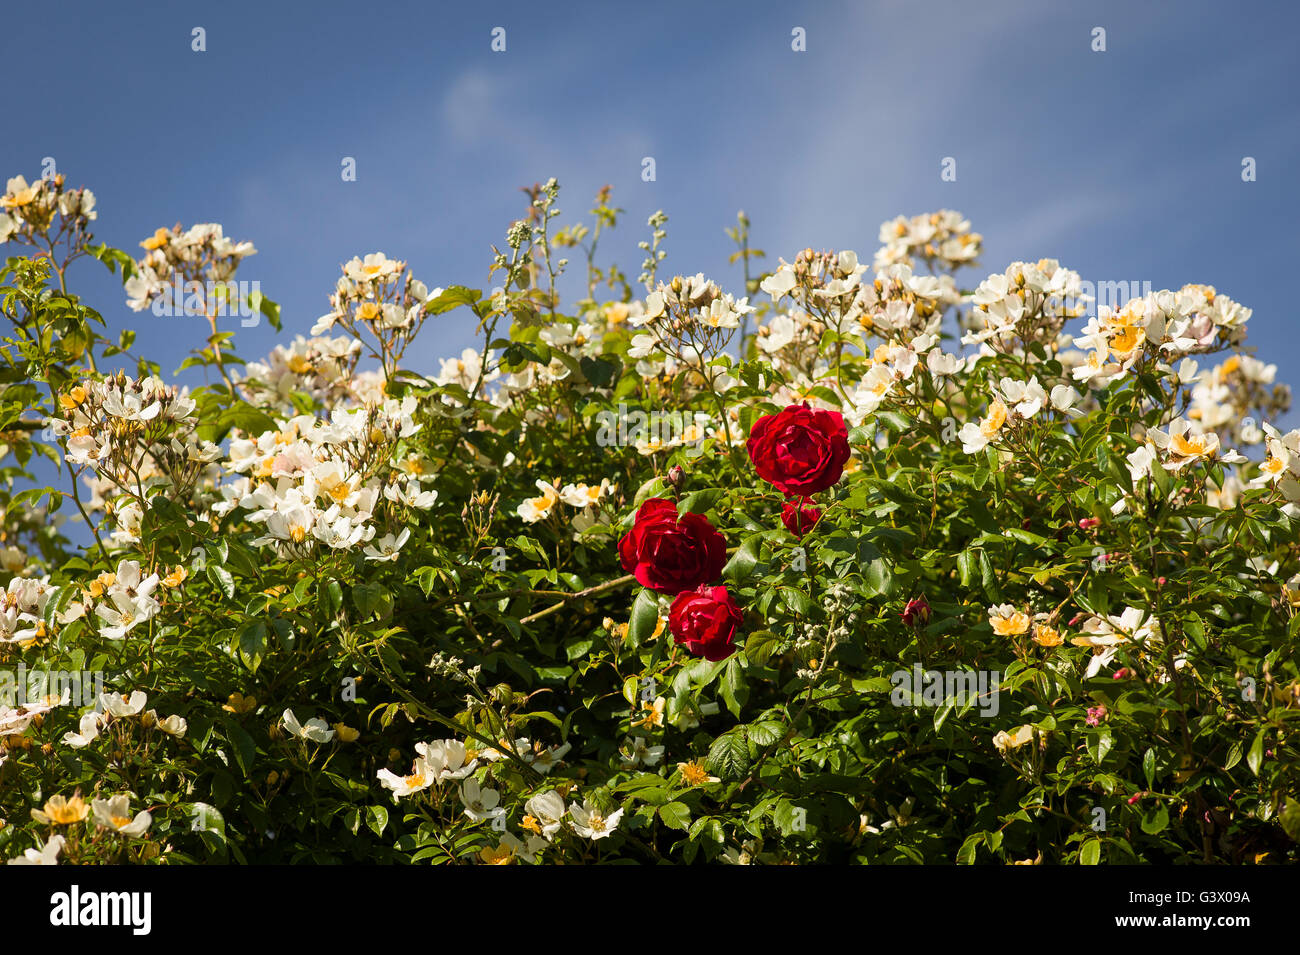 Red rose Danse de Feu appears amidst a mass of creamy white flowers or Rosa Wedding Day - Stock Image